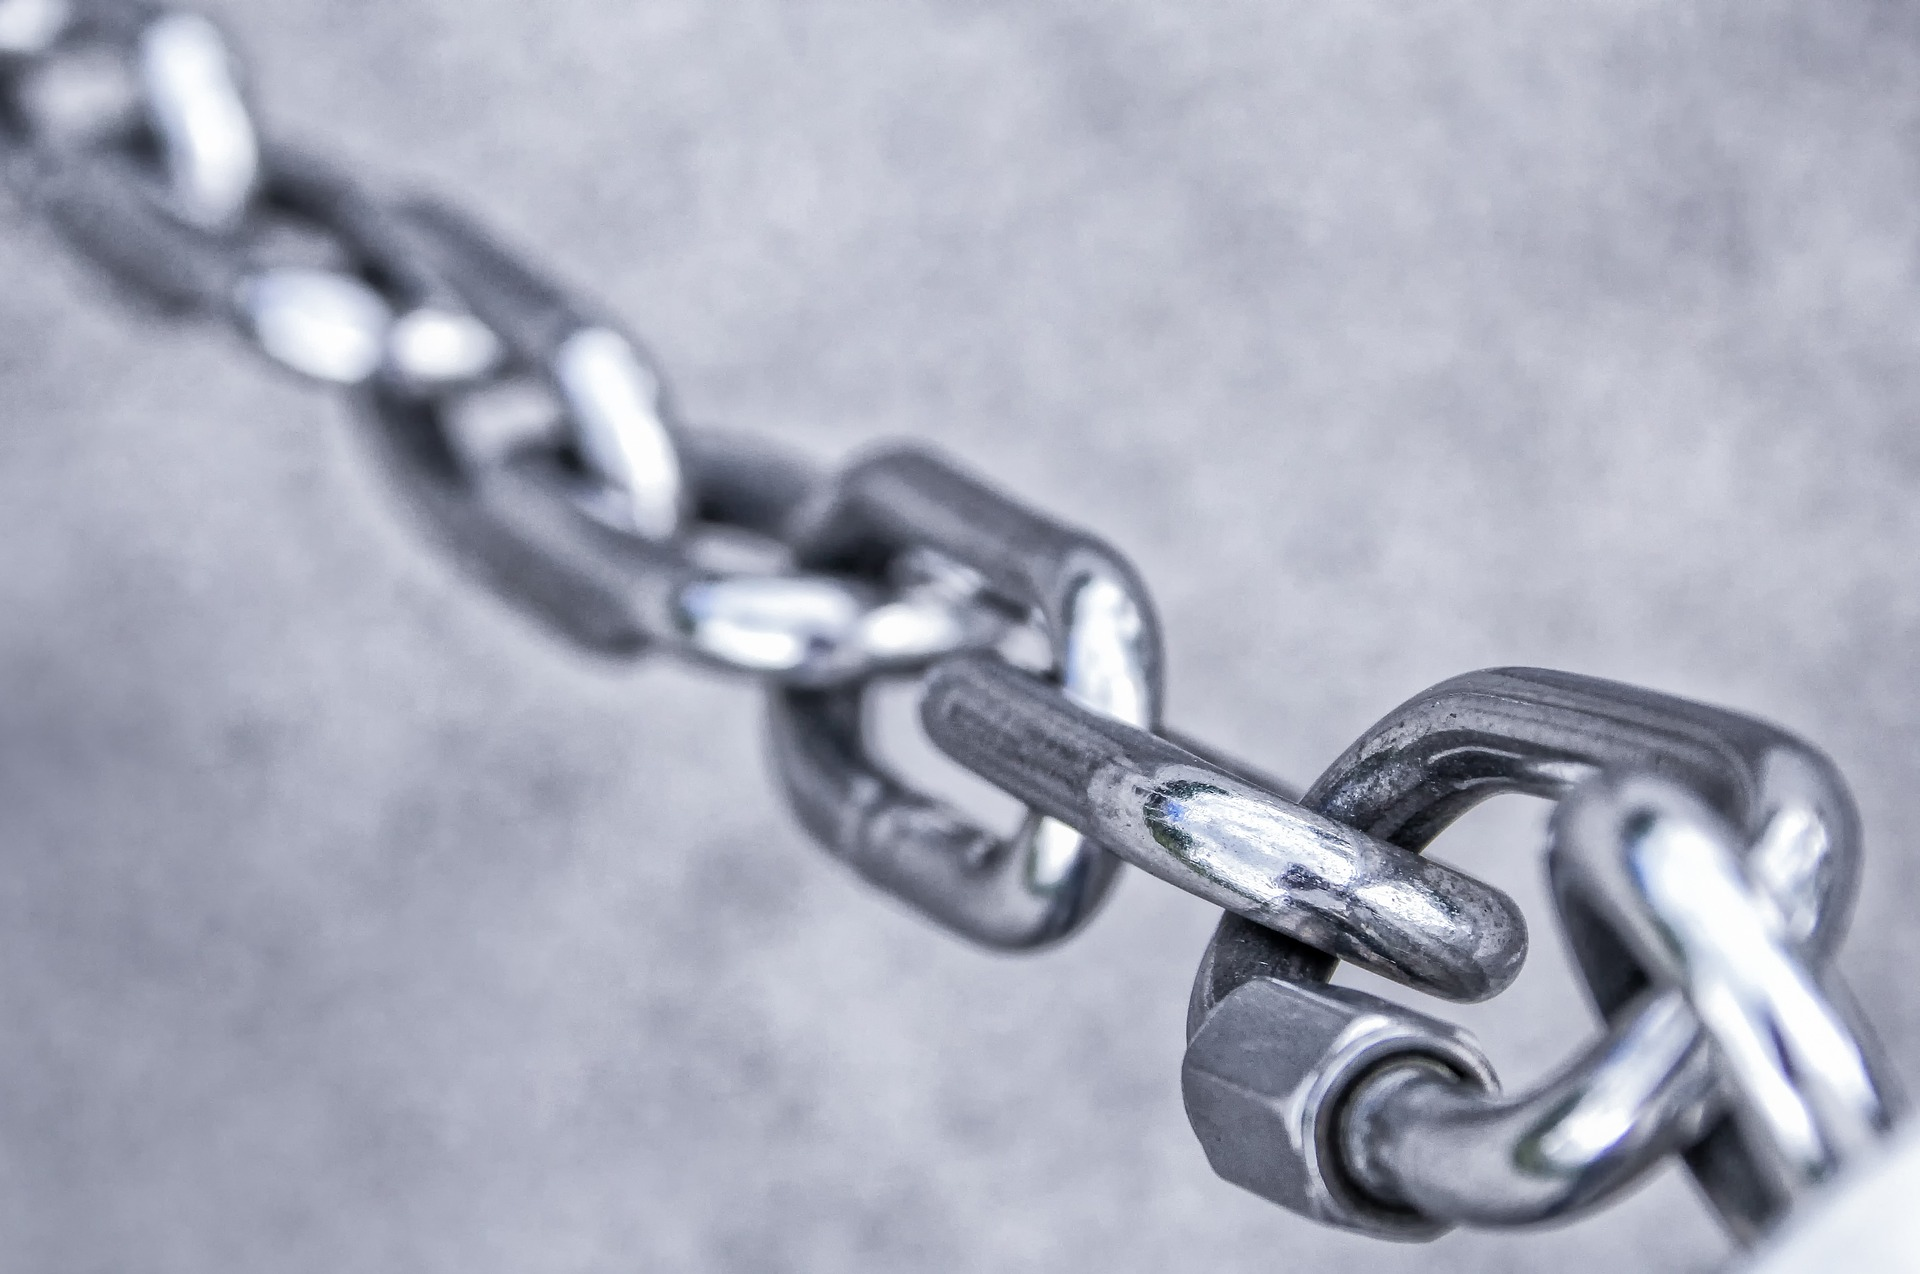 Connecting chain